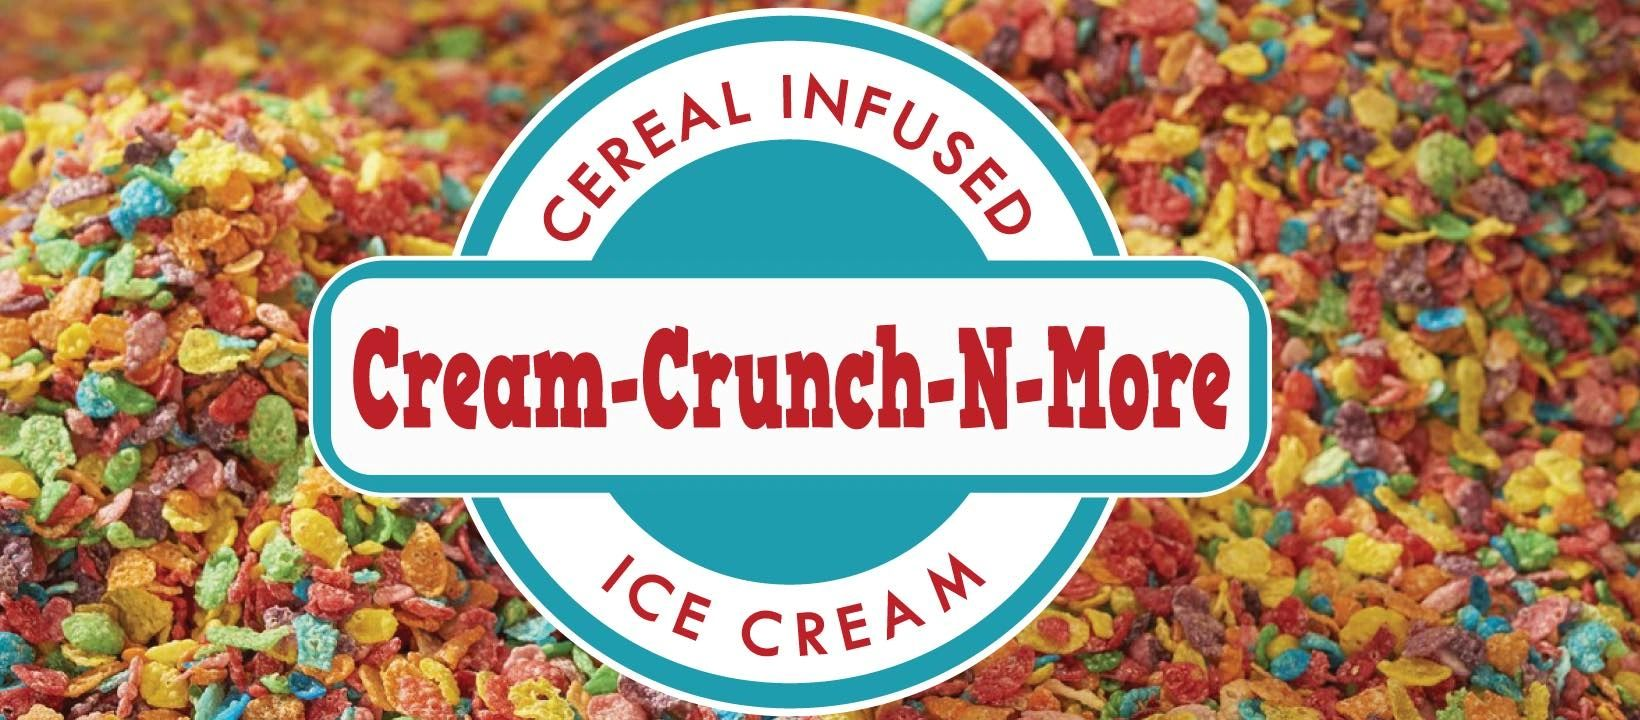 Cream Crunch N More, Cream-Crunch-N-More, Cereal Infused Ice Cream, Food Truck